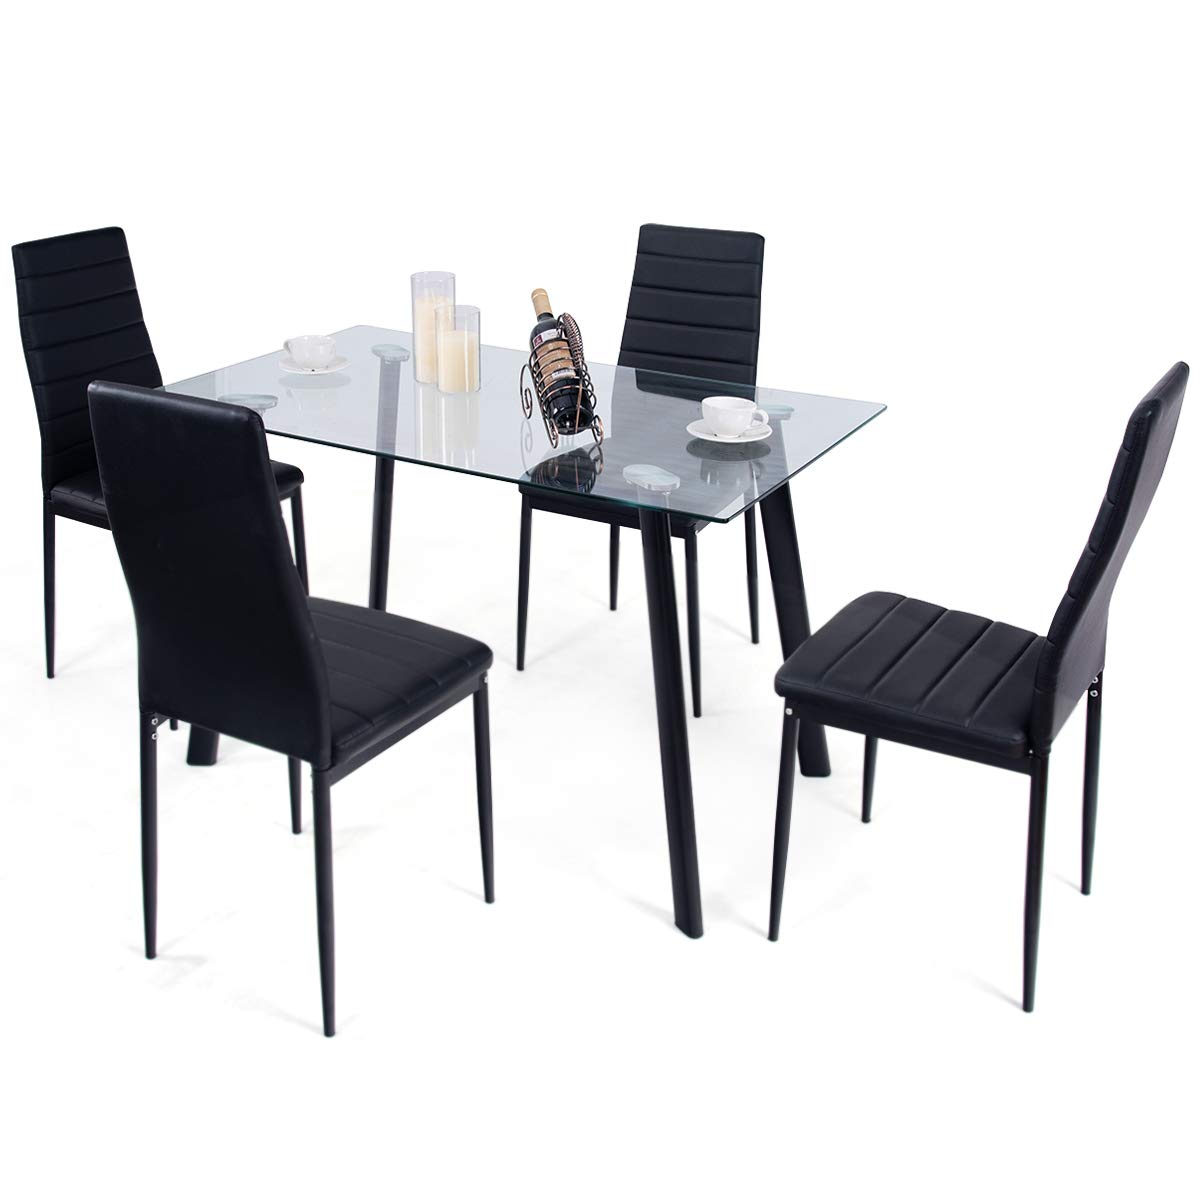 Tangkula 5 PCS Dining Table Set Modern Tempered Glass Top and PVC Leather Chair w/4 Chairs Dining Room Kitchen Furniture (Black) by Tangkula (Image #7)